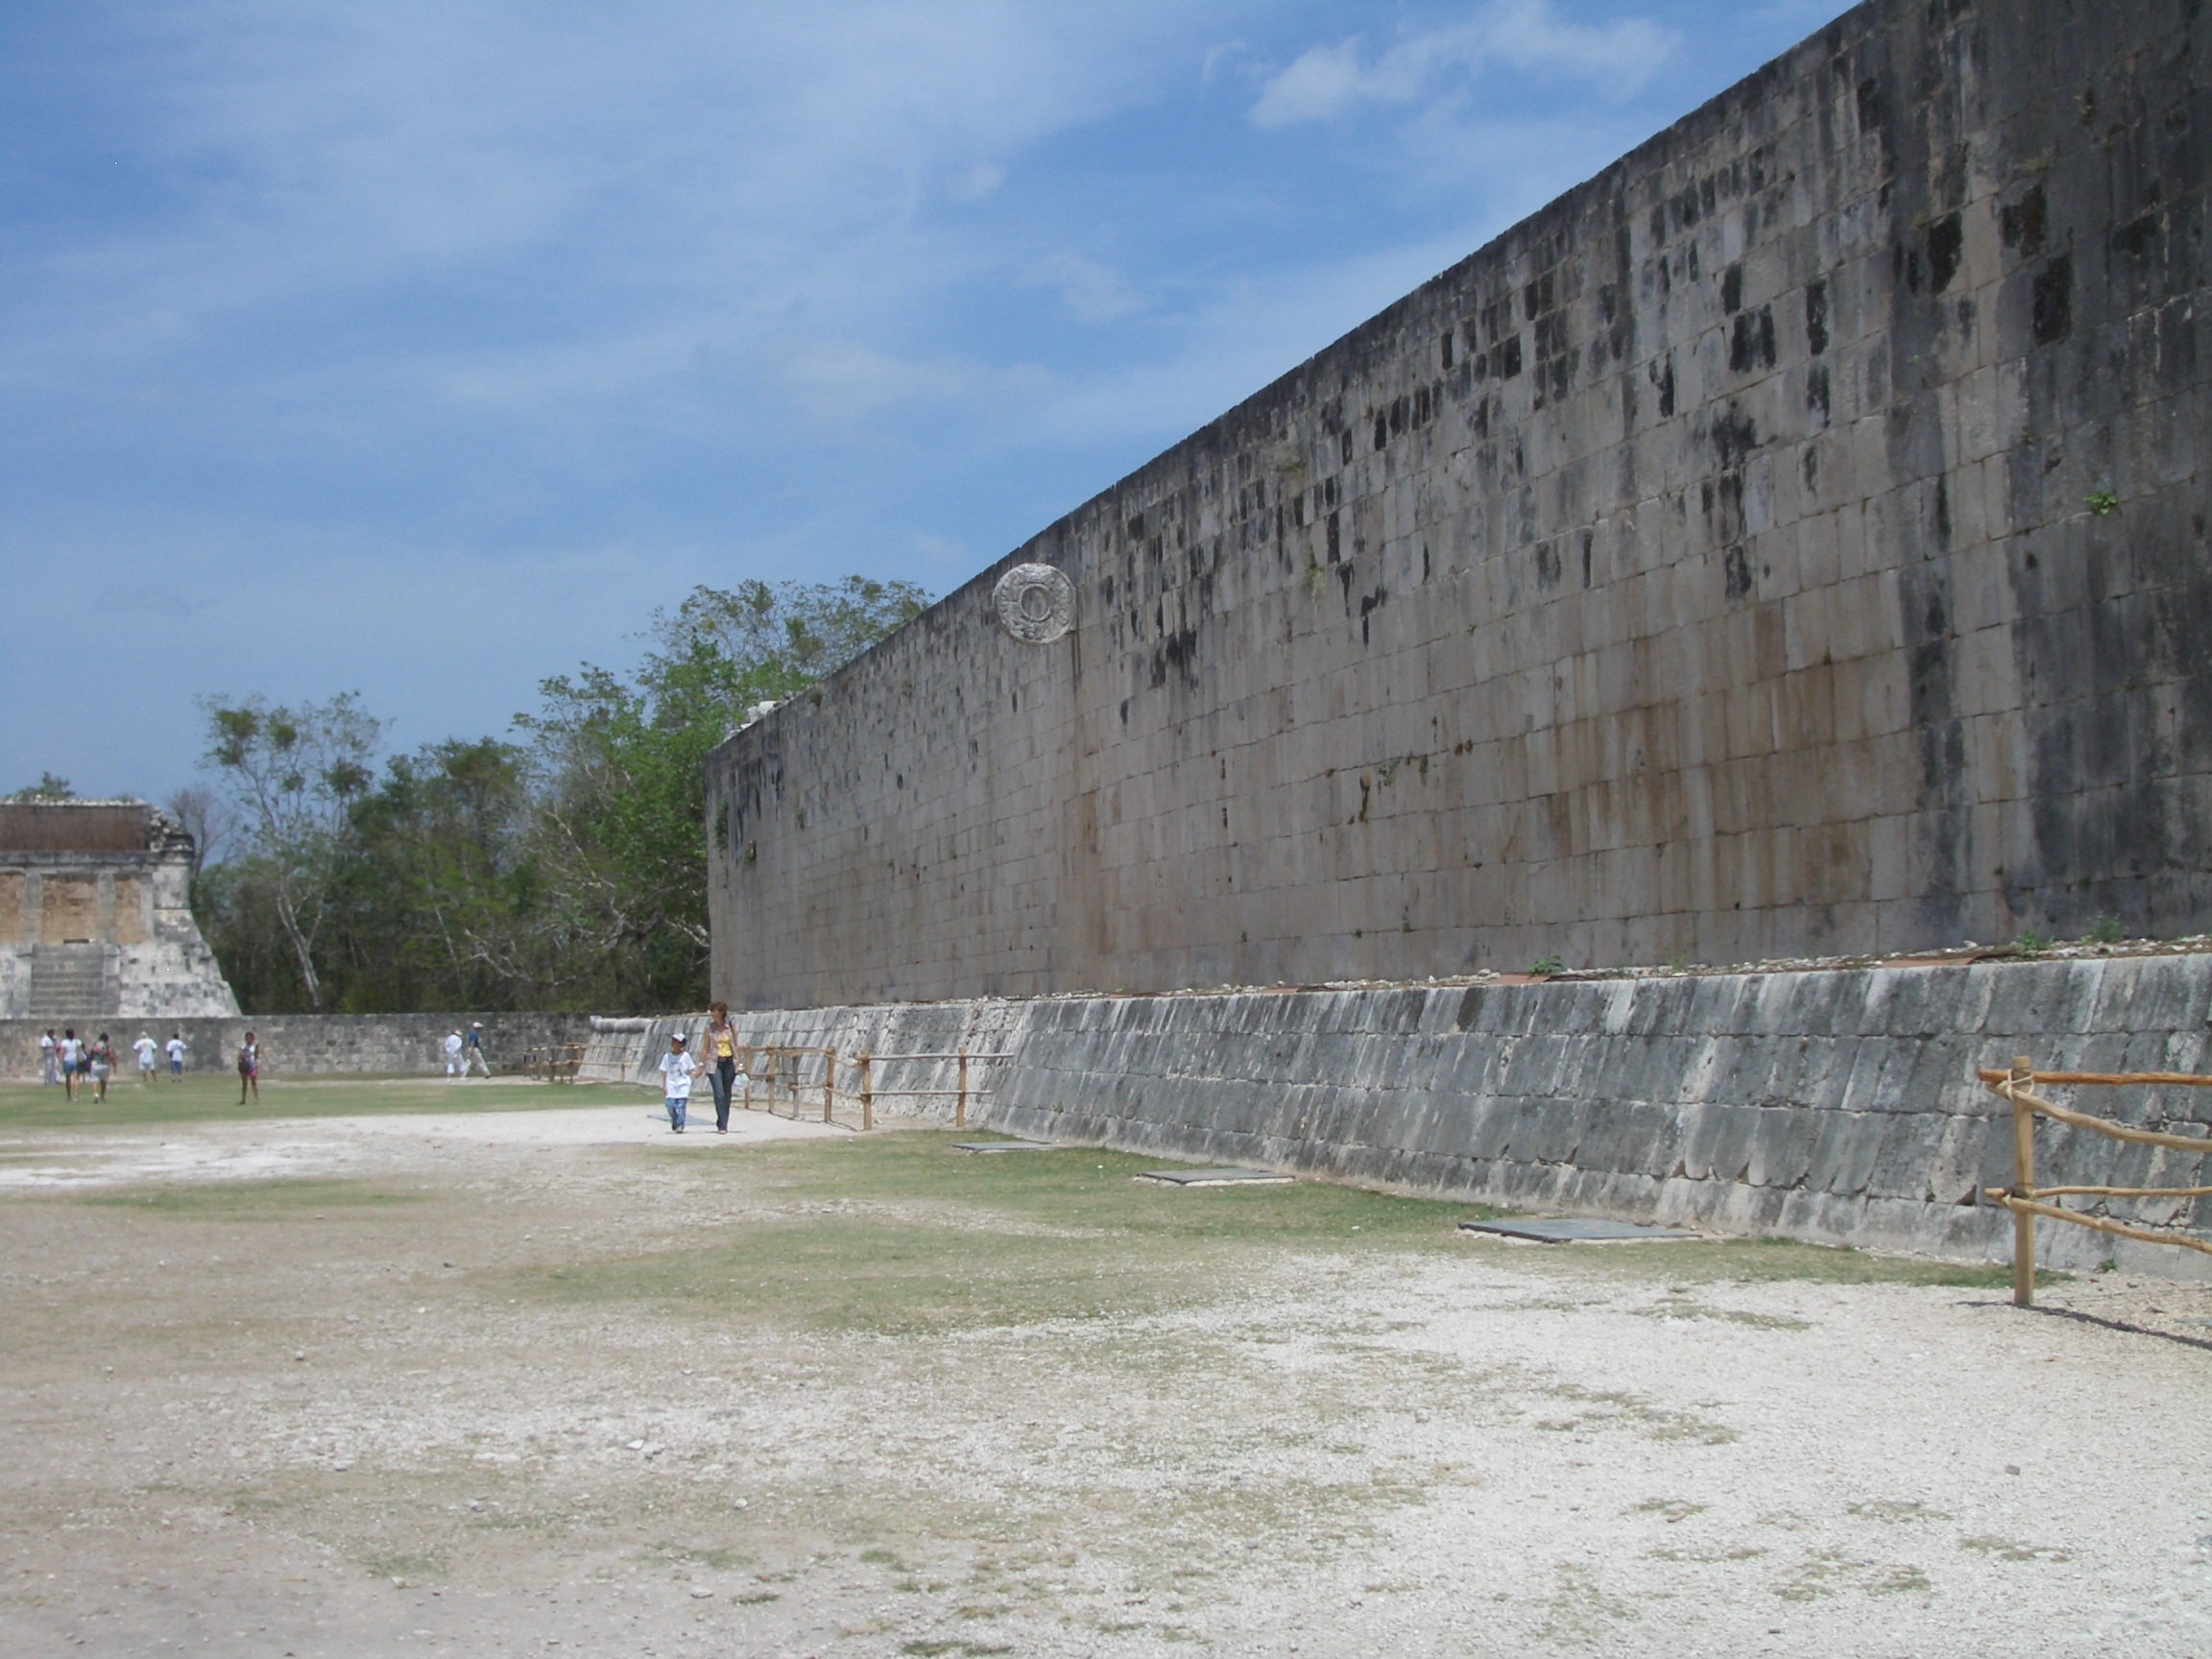 http://upload.wikimedia.org/wikipedia/commons/8/87/Chichen_Itza_stadium.jpg